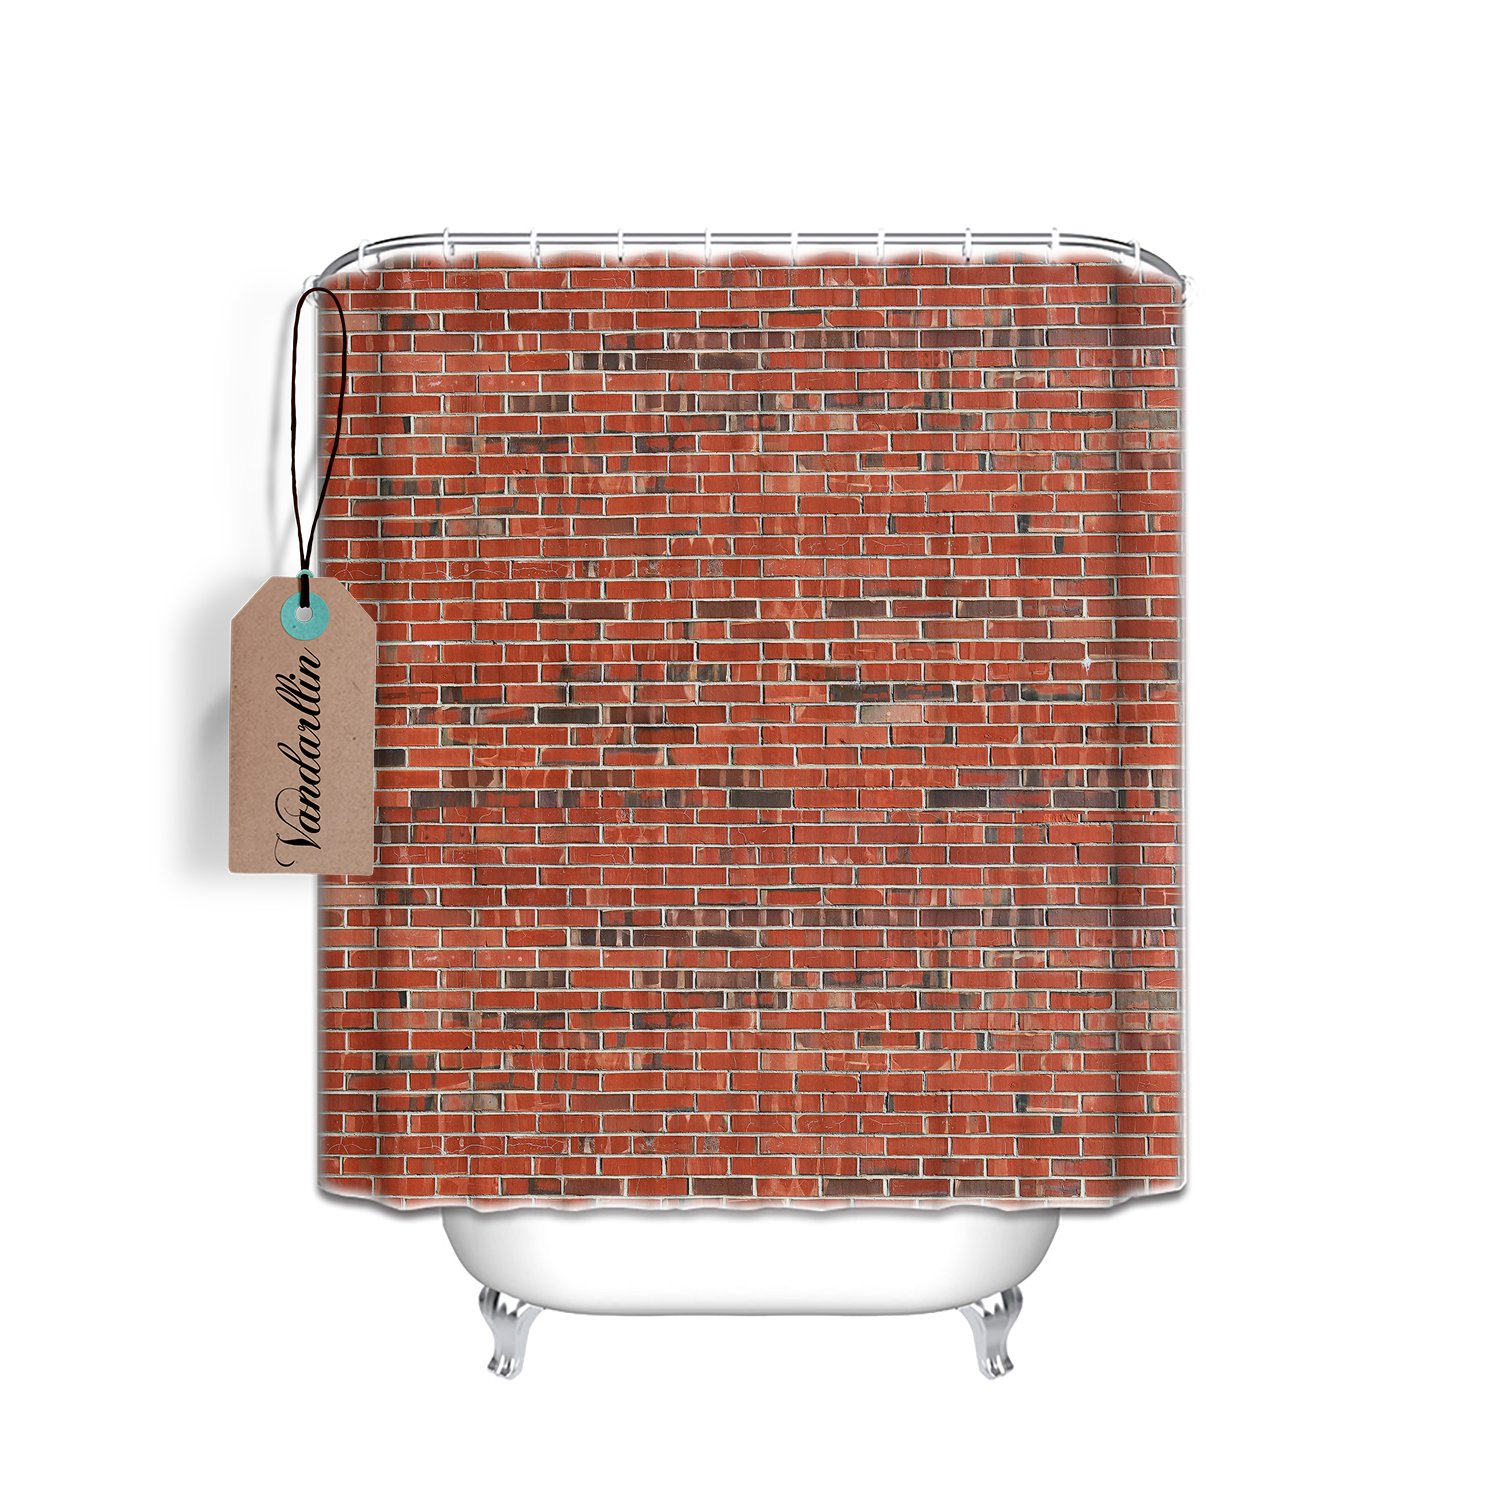 Vintage Red Brick Wall Shower Curtain Extra Long Size 72 x 84 Inch,Bathroom Decoration,Mildew Waterproof Polyester Fabric